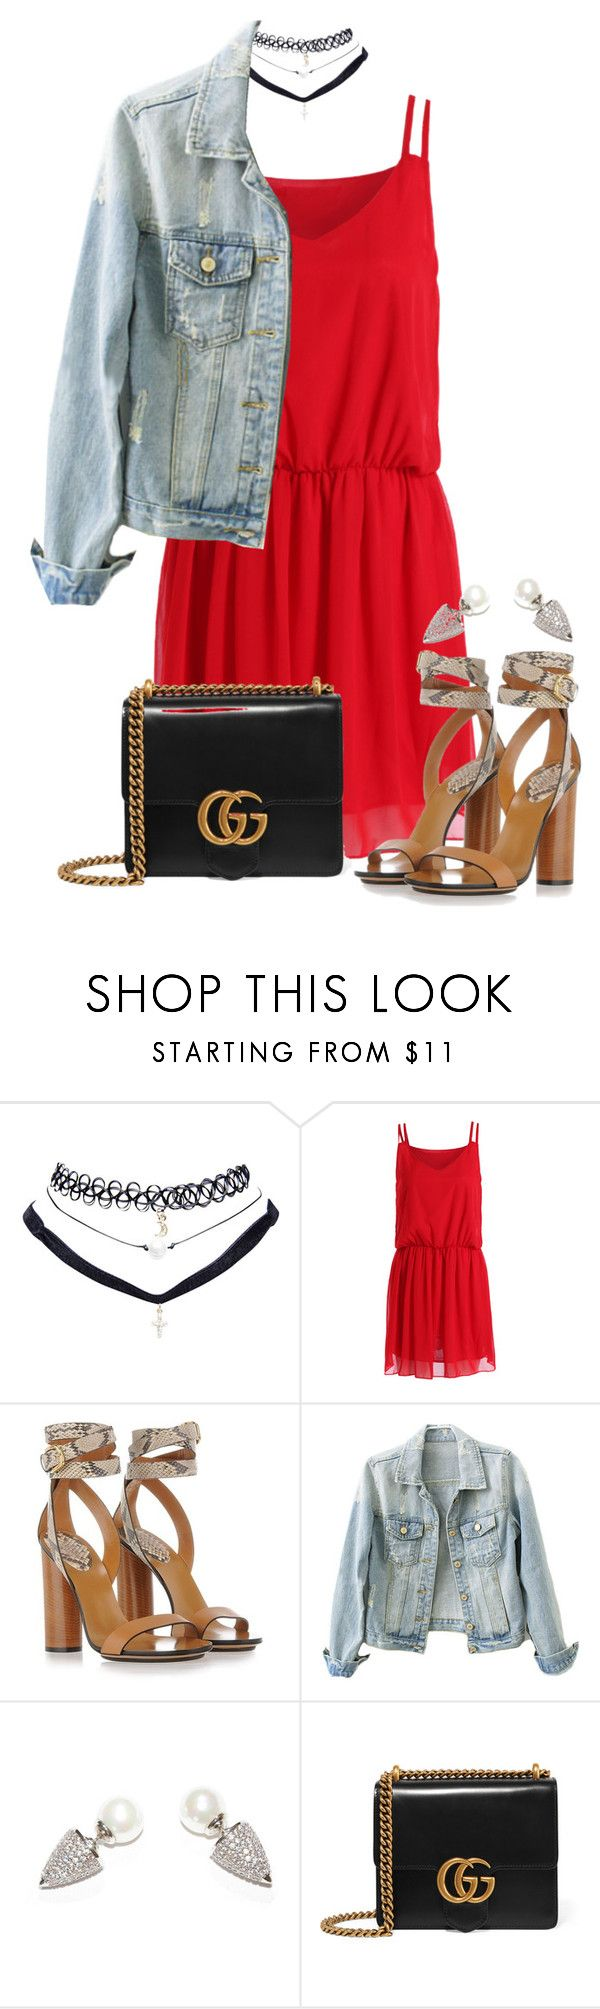 """""""GG"""" by jloveespinal ❤ liked on Polyvore featuring Wet Seal and Gucci"""